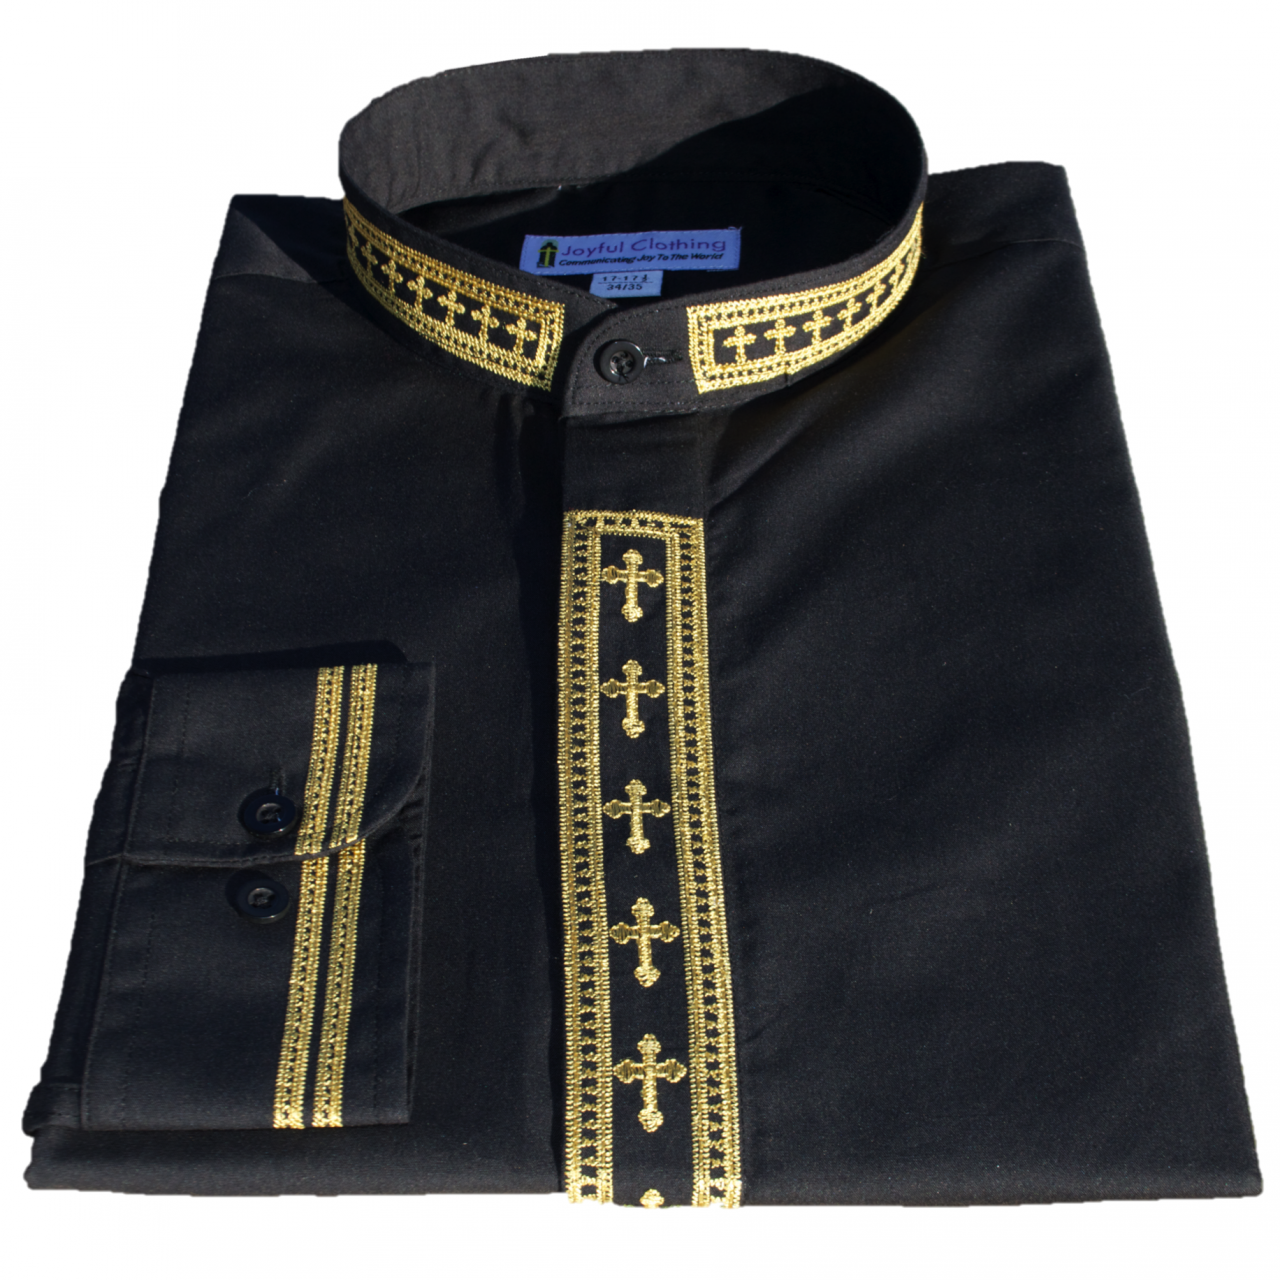 306. Men's Long-Sleeve Clergy Shirt With Fine Embroidery - Black/Gold